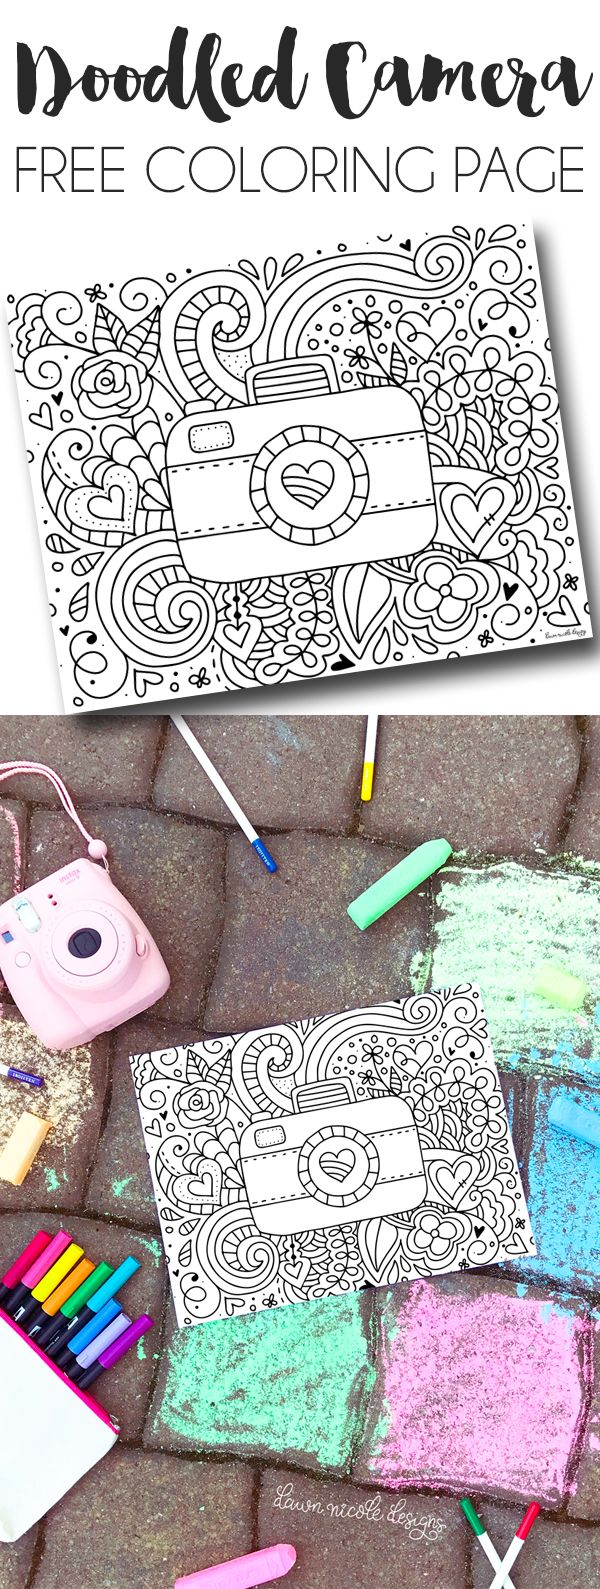 Doodled Camera Free Printable Coloring Page | Free printable ...